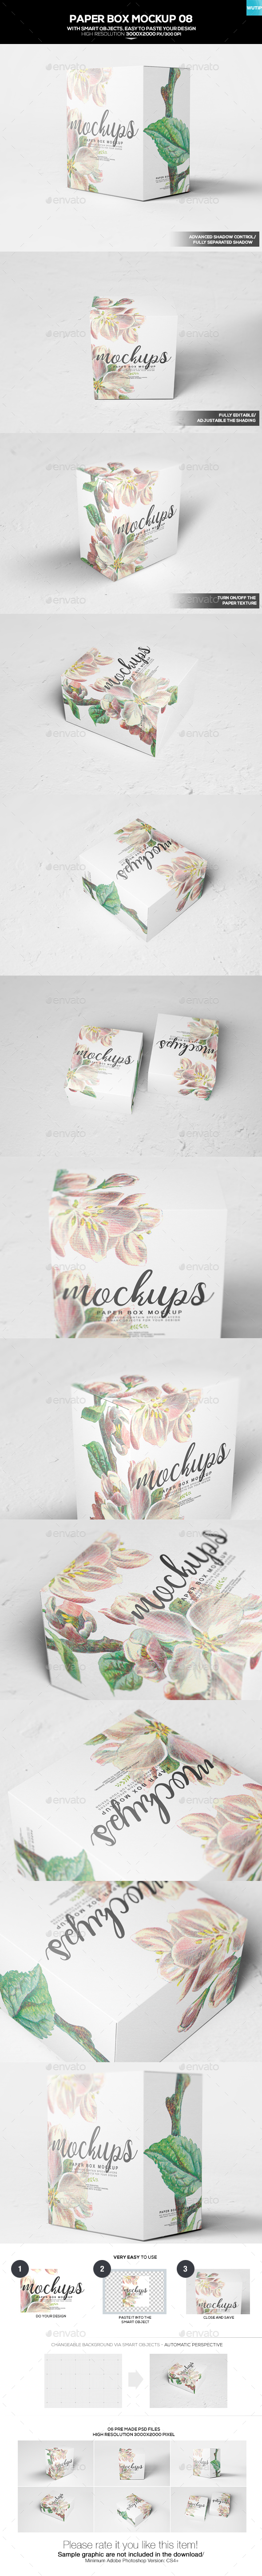 Paper Box Mockup 08 - Miscellaneous Packaging